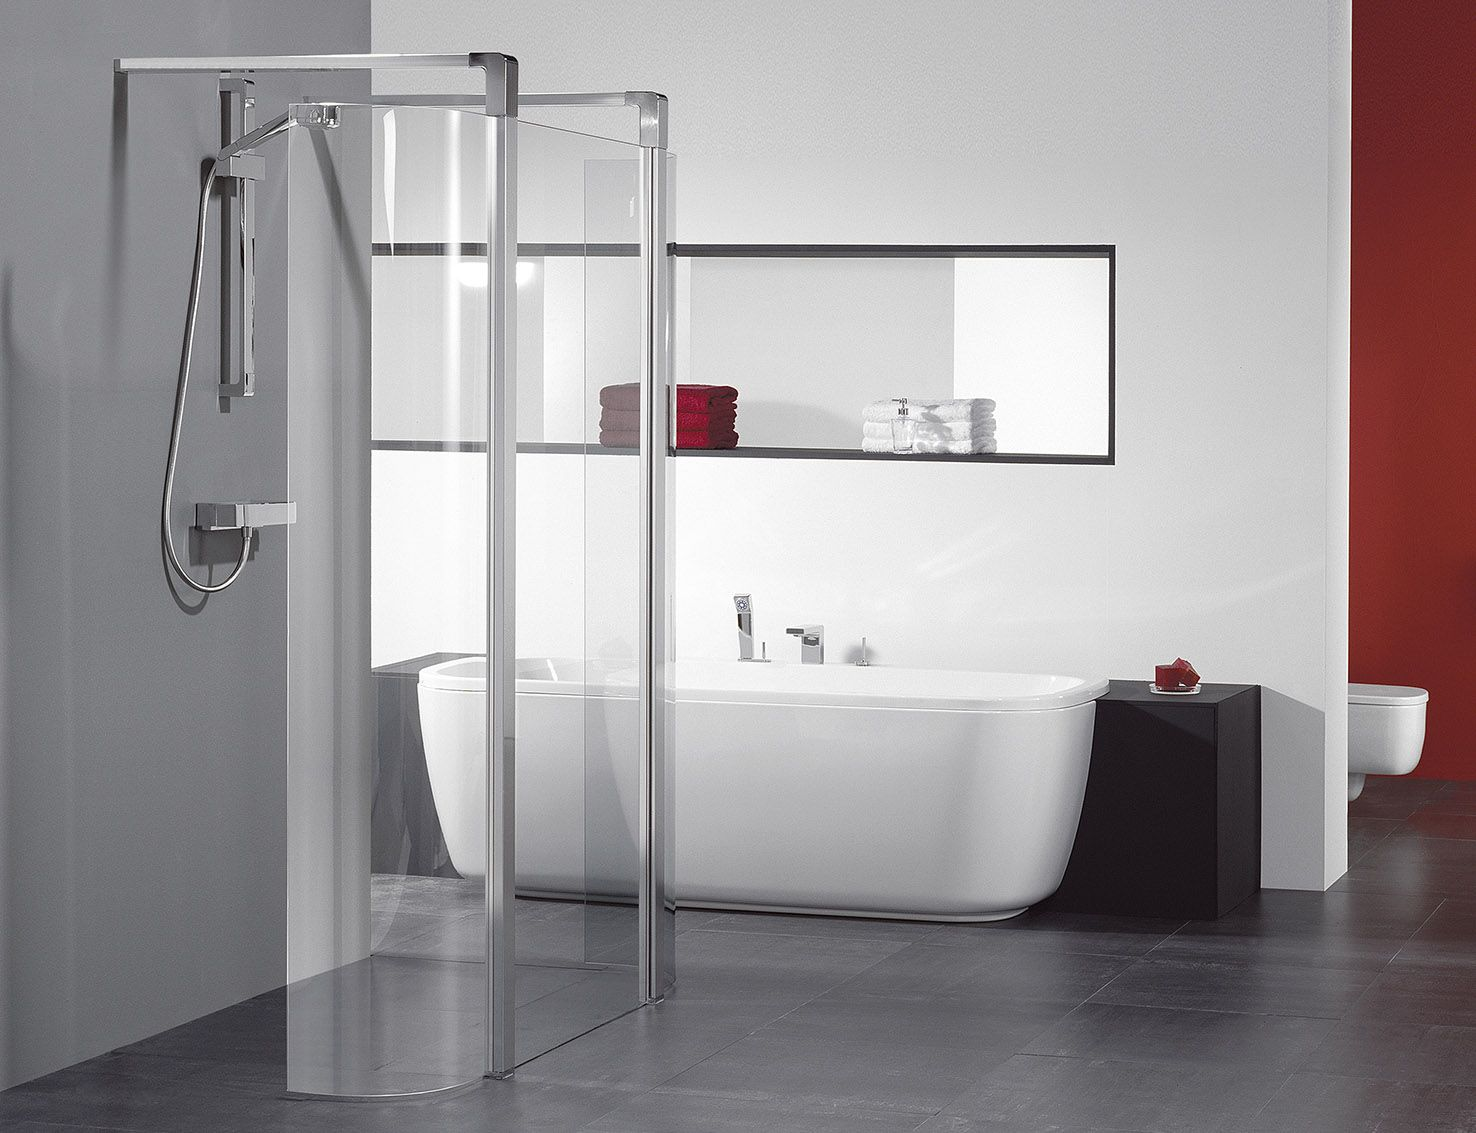 Duka 6000 Inloopdouche Met Chezza Bad Sealskin Sanitair Shower Panels Bathtub En Bathroom